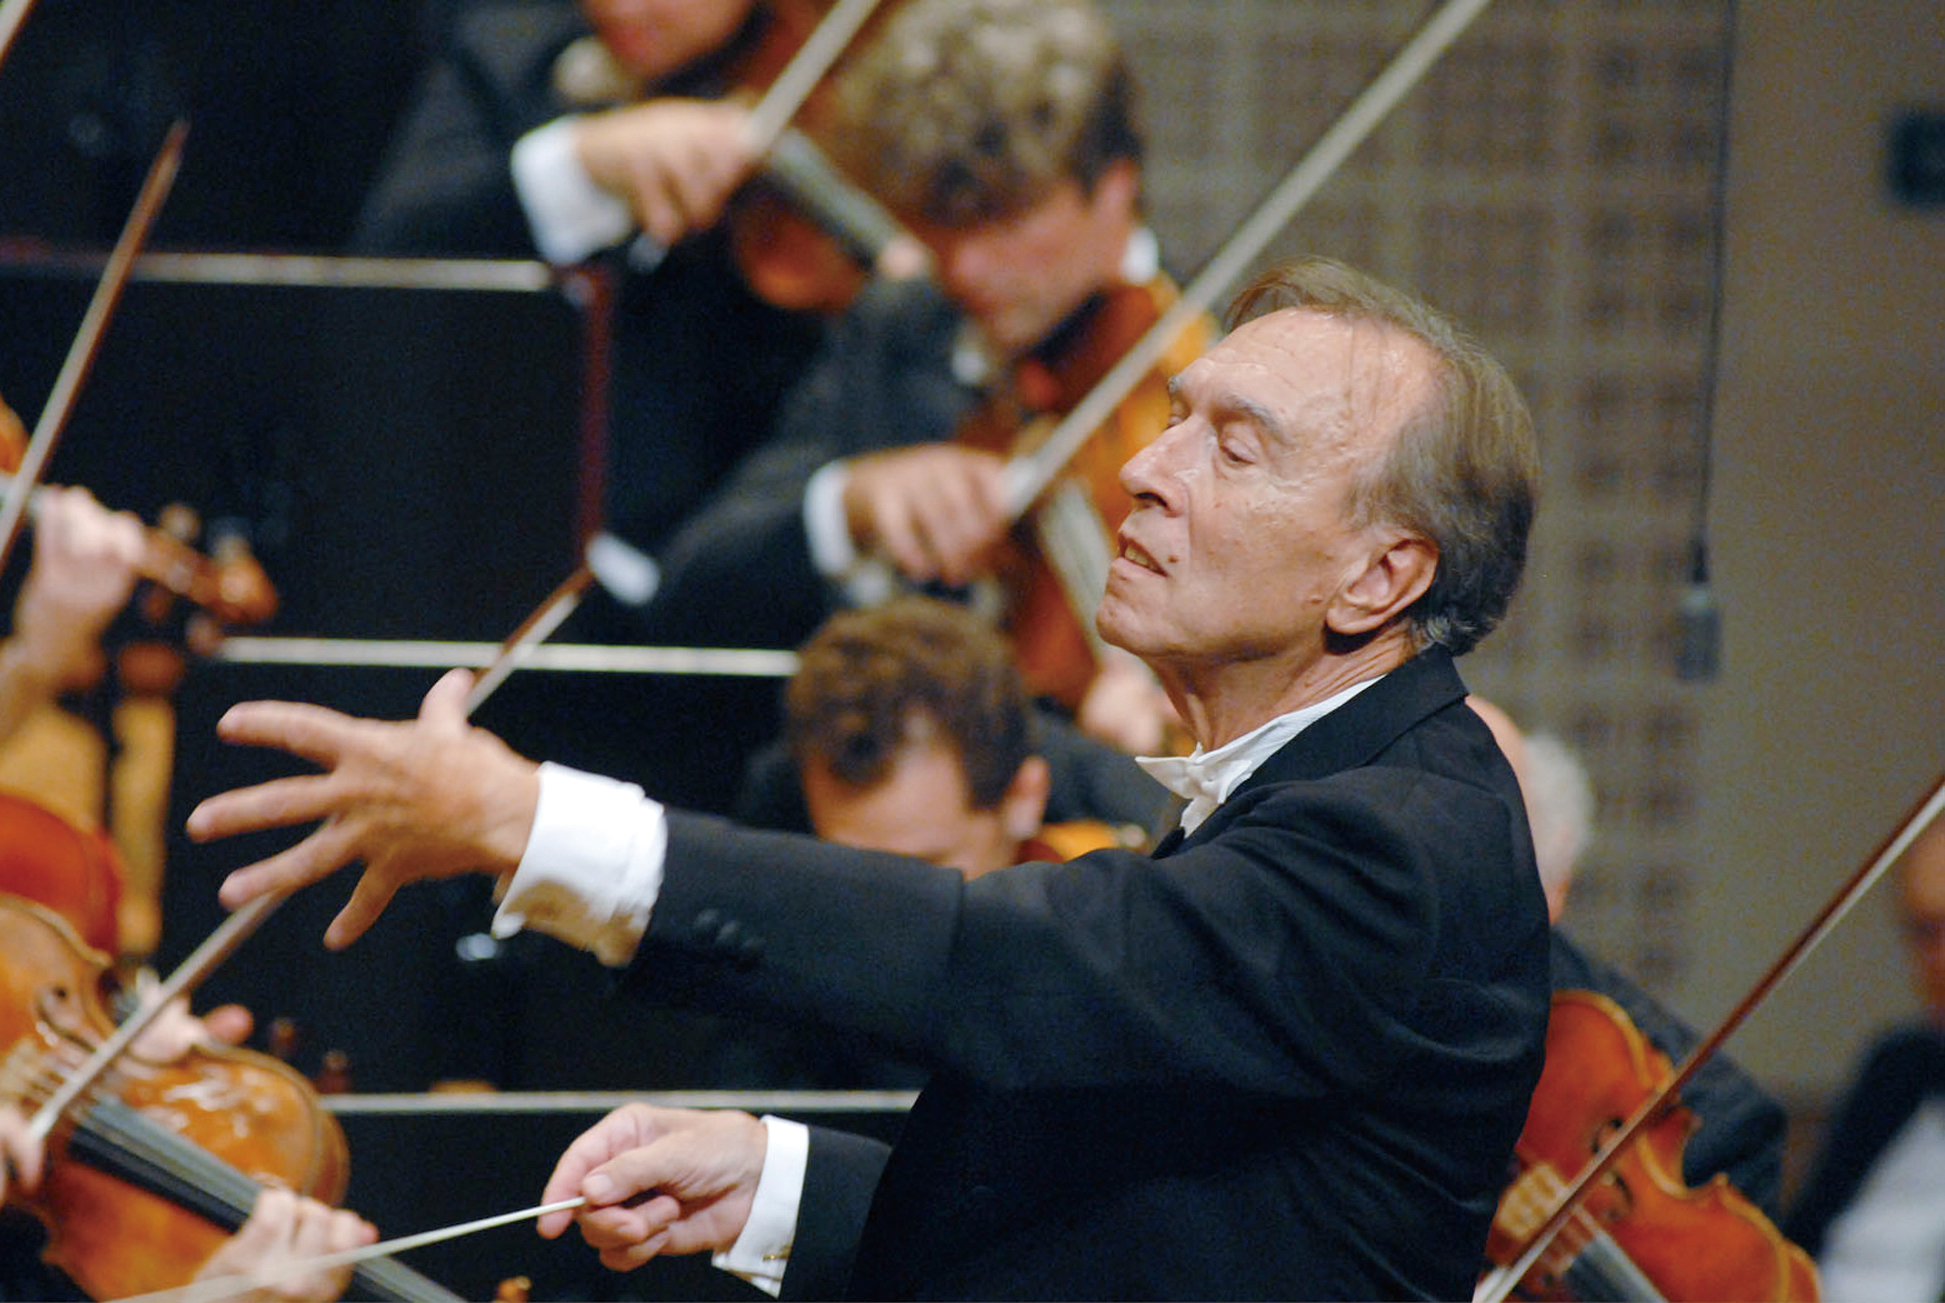 An undated handout image of Claudio Abbado. Artistic differences are cited in the fracturing of the classical music partnership of Helene Grimaud and ...